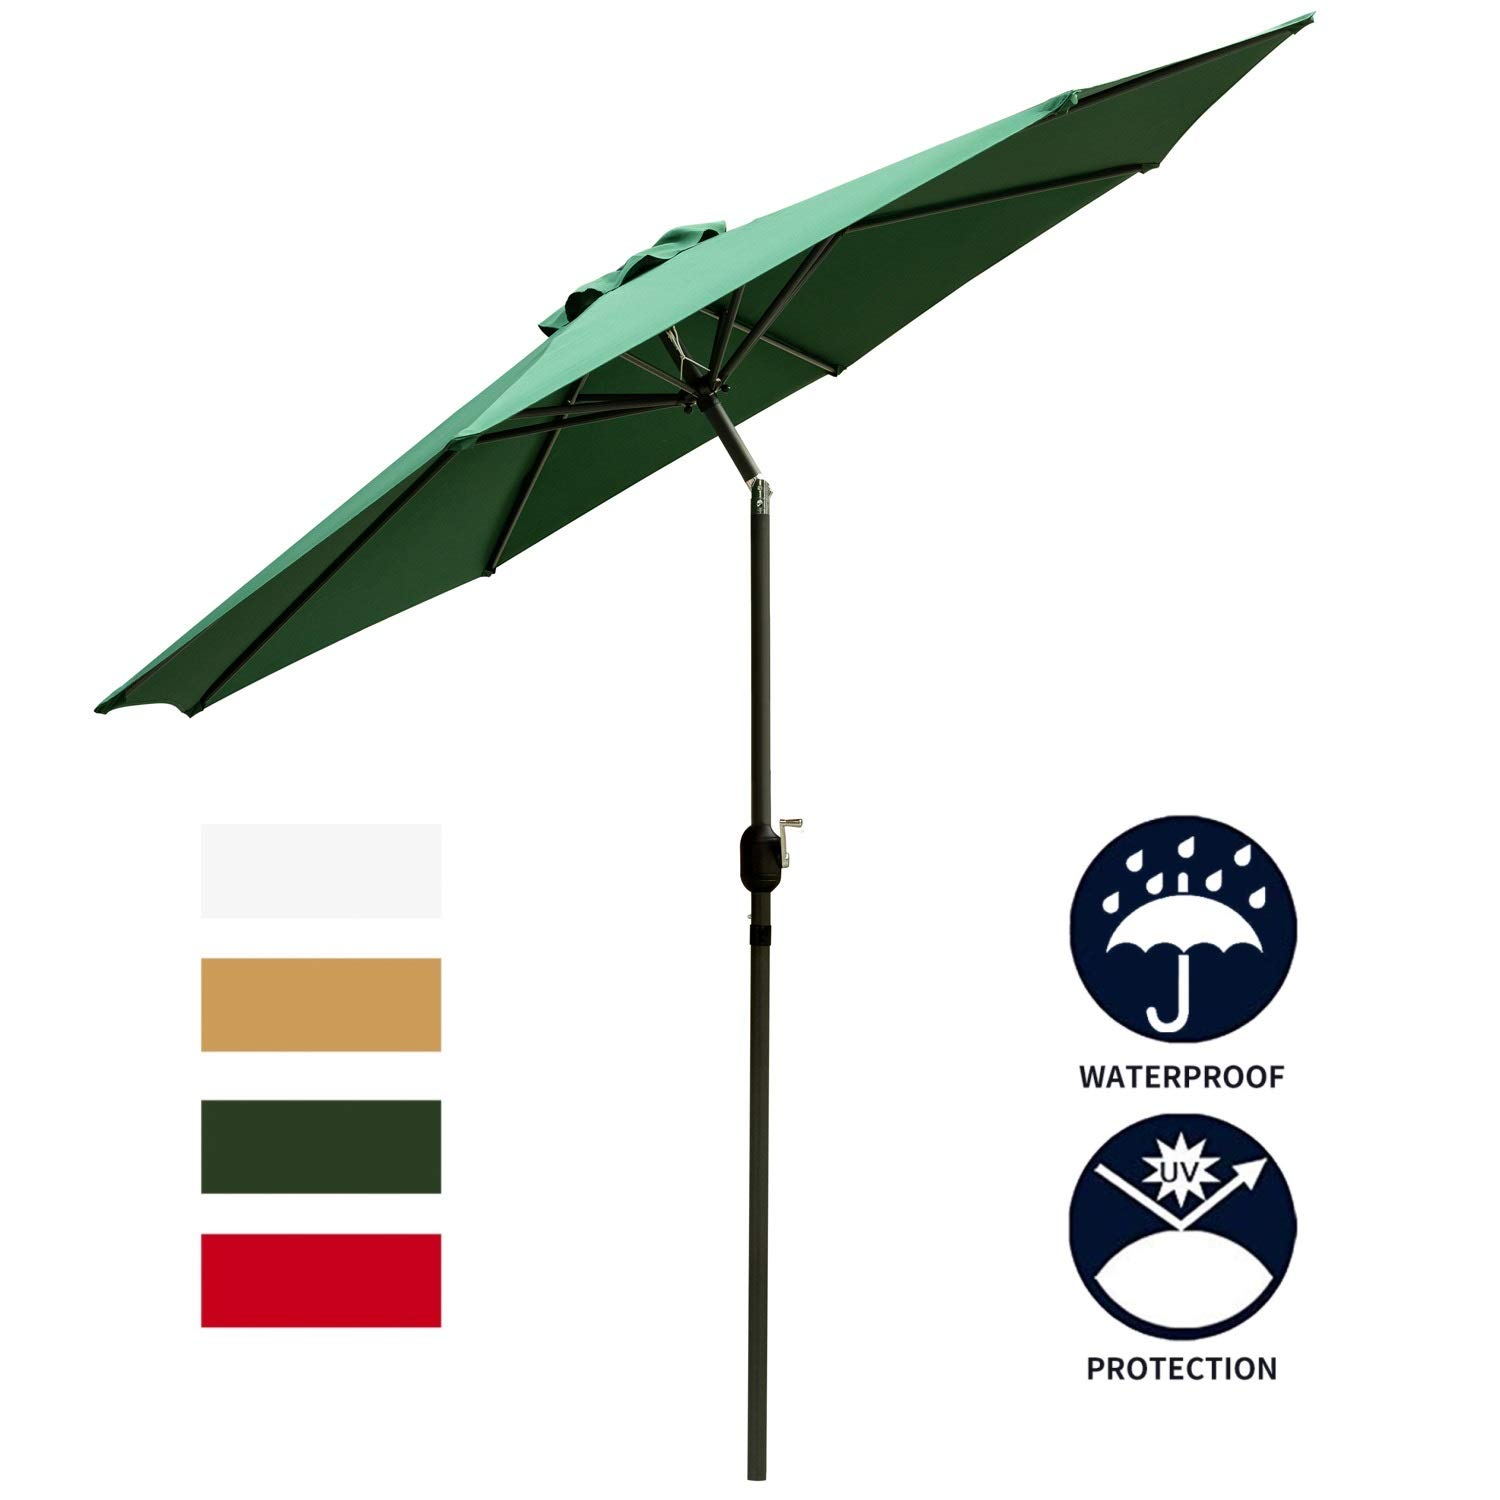 LEISURELIFE Green 9 Patio Umbrella Outdoor – Heavy Strong Patio Table Umbrellas,8 Sturdy Ribs,Tilt and Crank